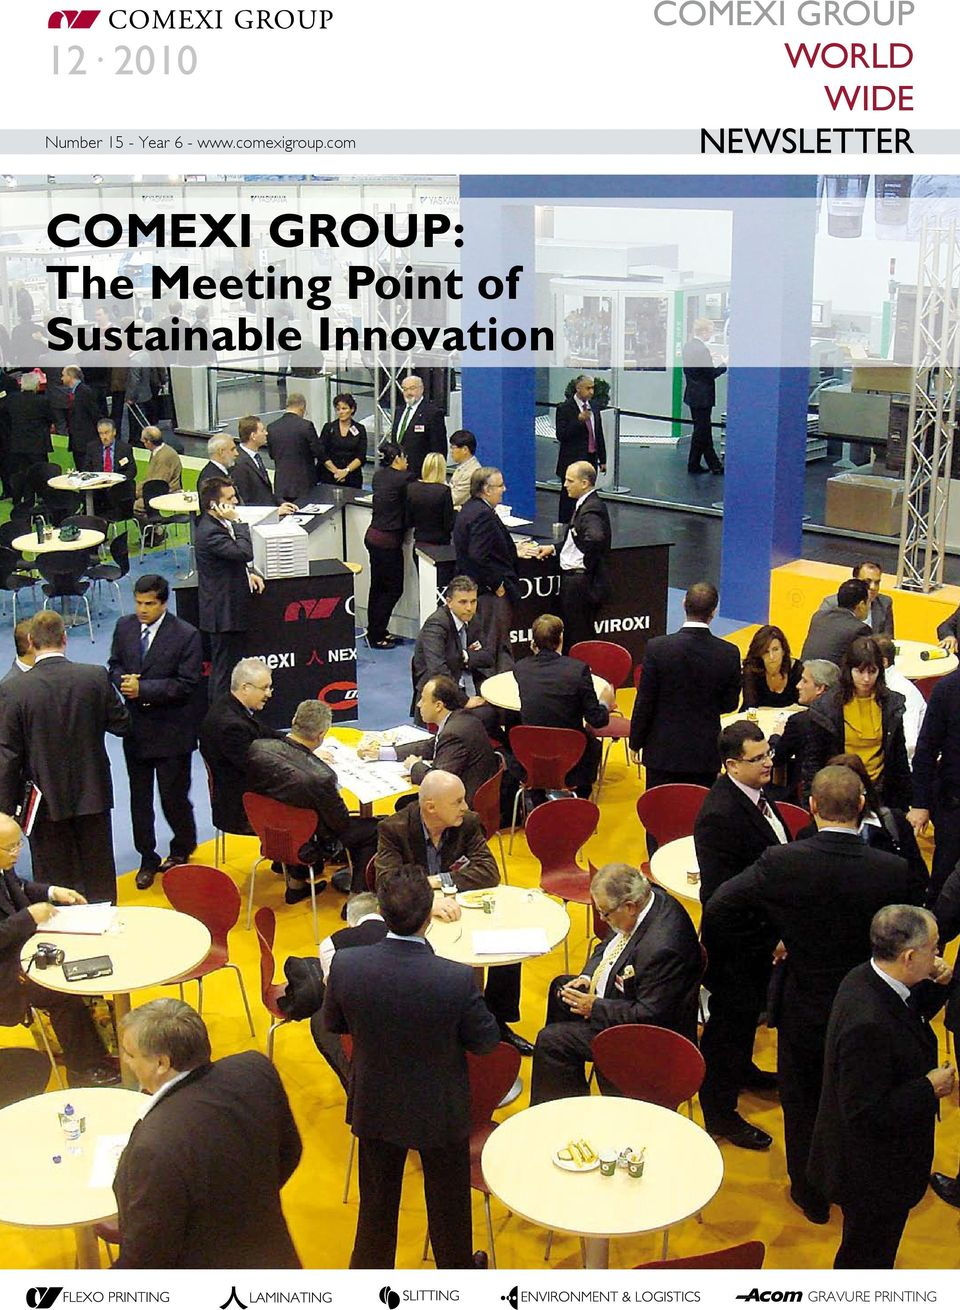 com COMEXI GROUP WORLD WIDE NEWSLETTER